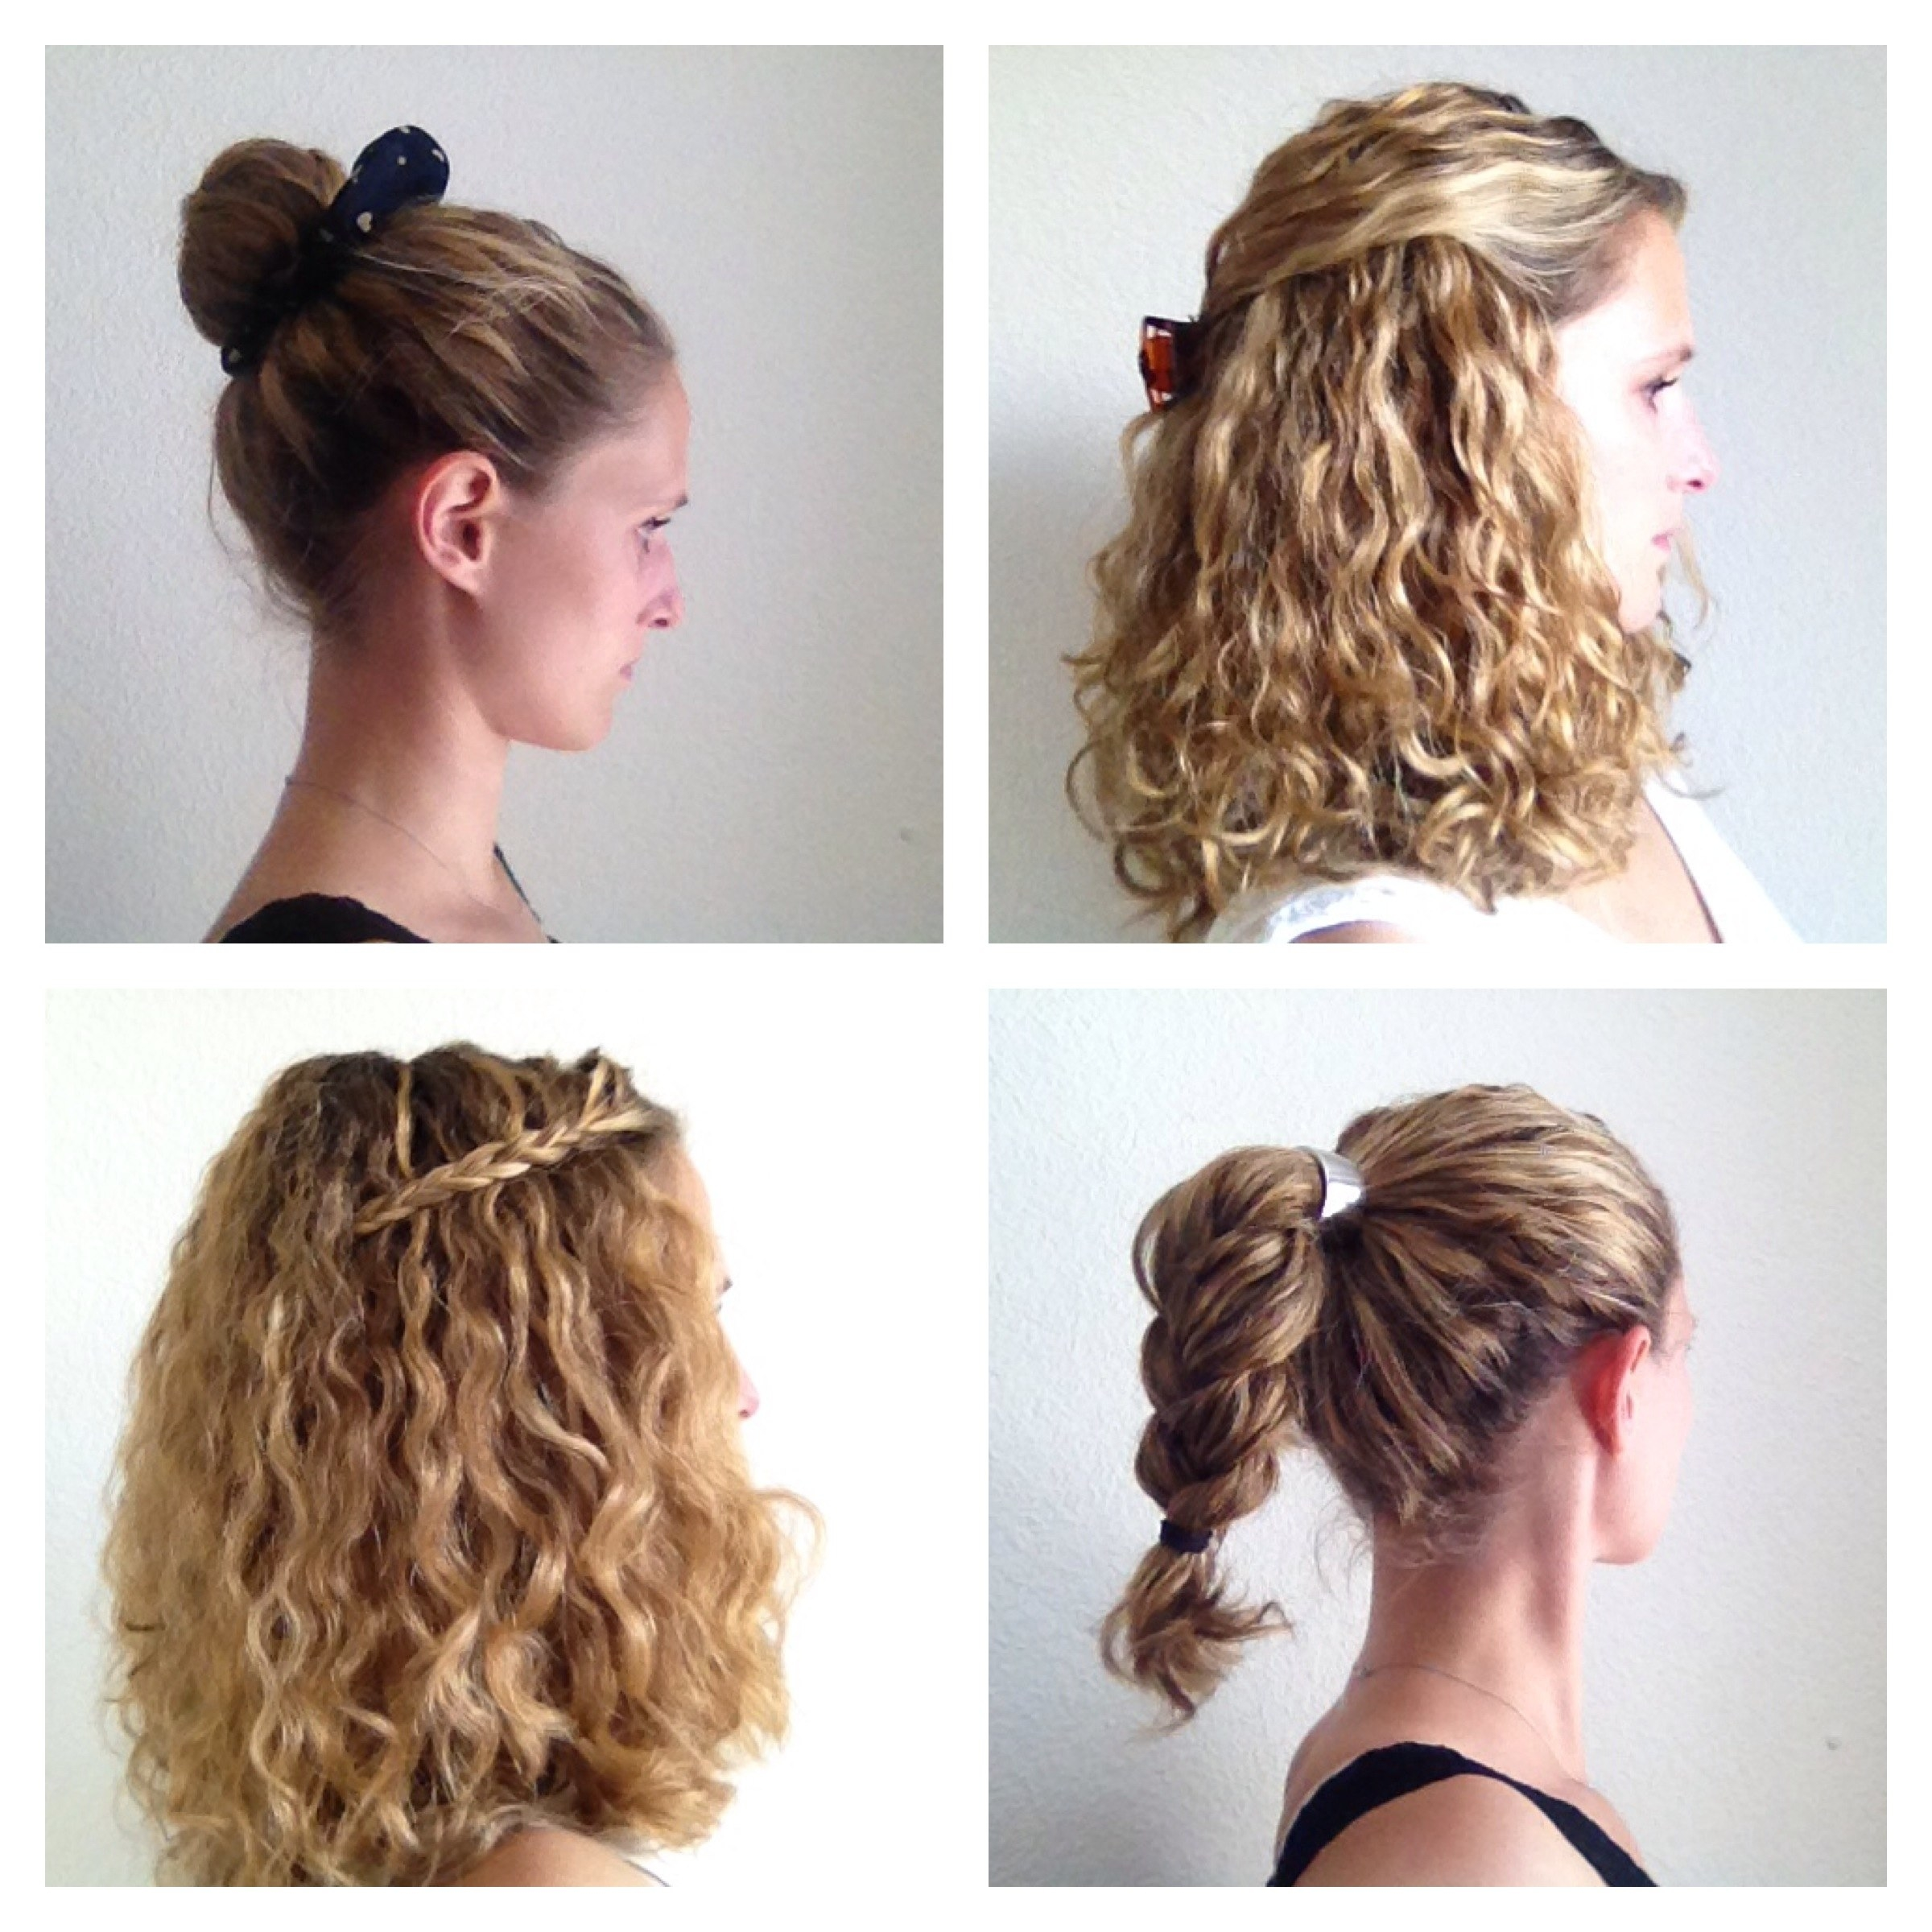 easy hairstyles for curly hair 7 - Easy Hairstyles For Curly Hair